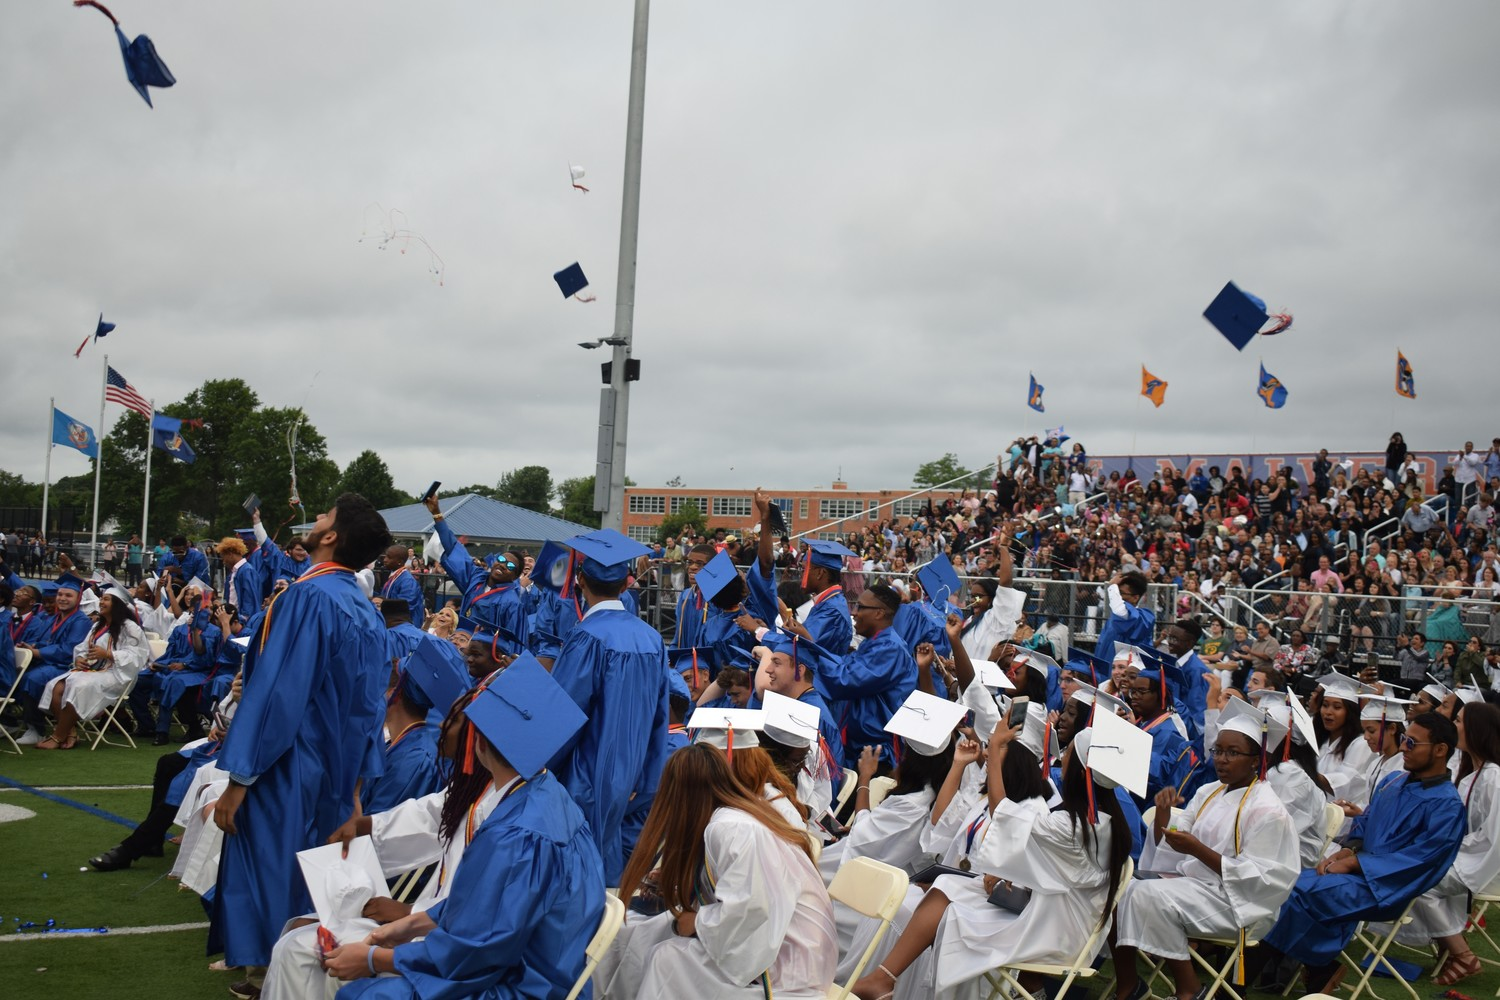 Mortarboards flew high at Malverne High School's graduation ceremony last Friday.